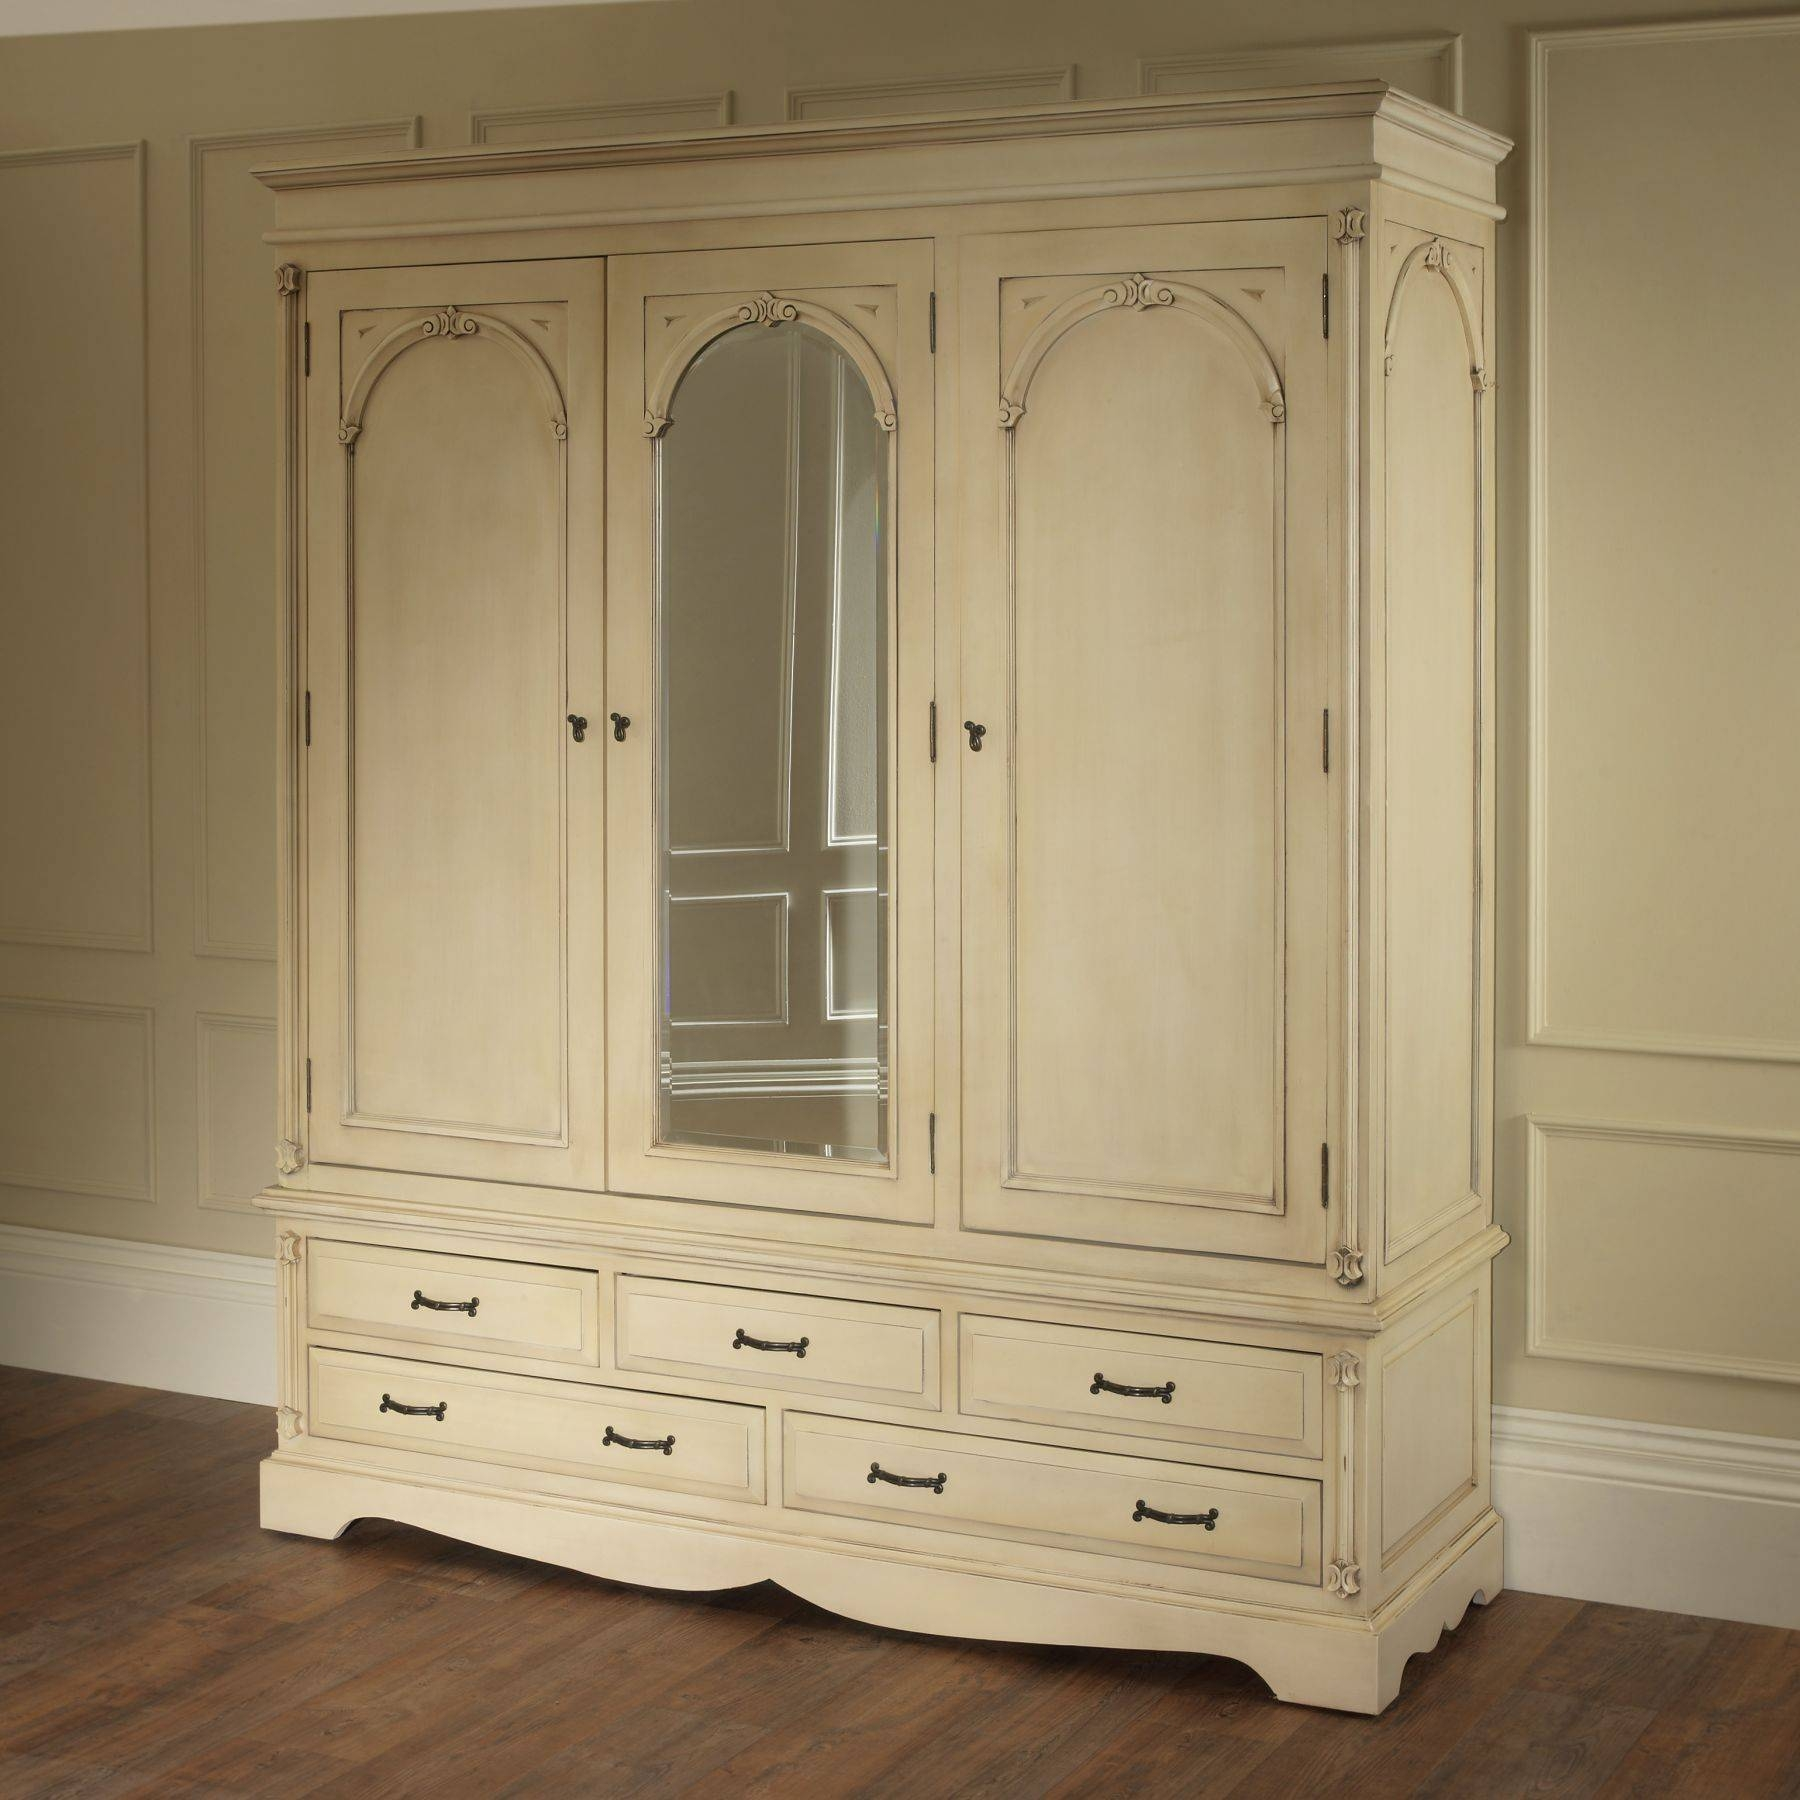 Victorian Antique French Wardrobe Works Wonderful Alongside Our for Victorian Wardrobes (Image 8 of 15)